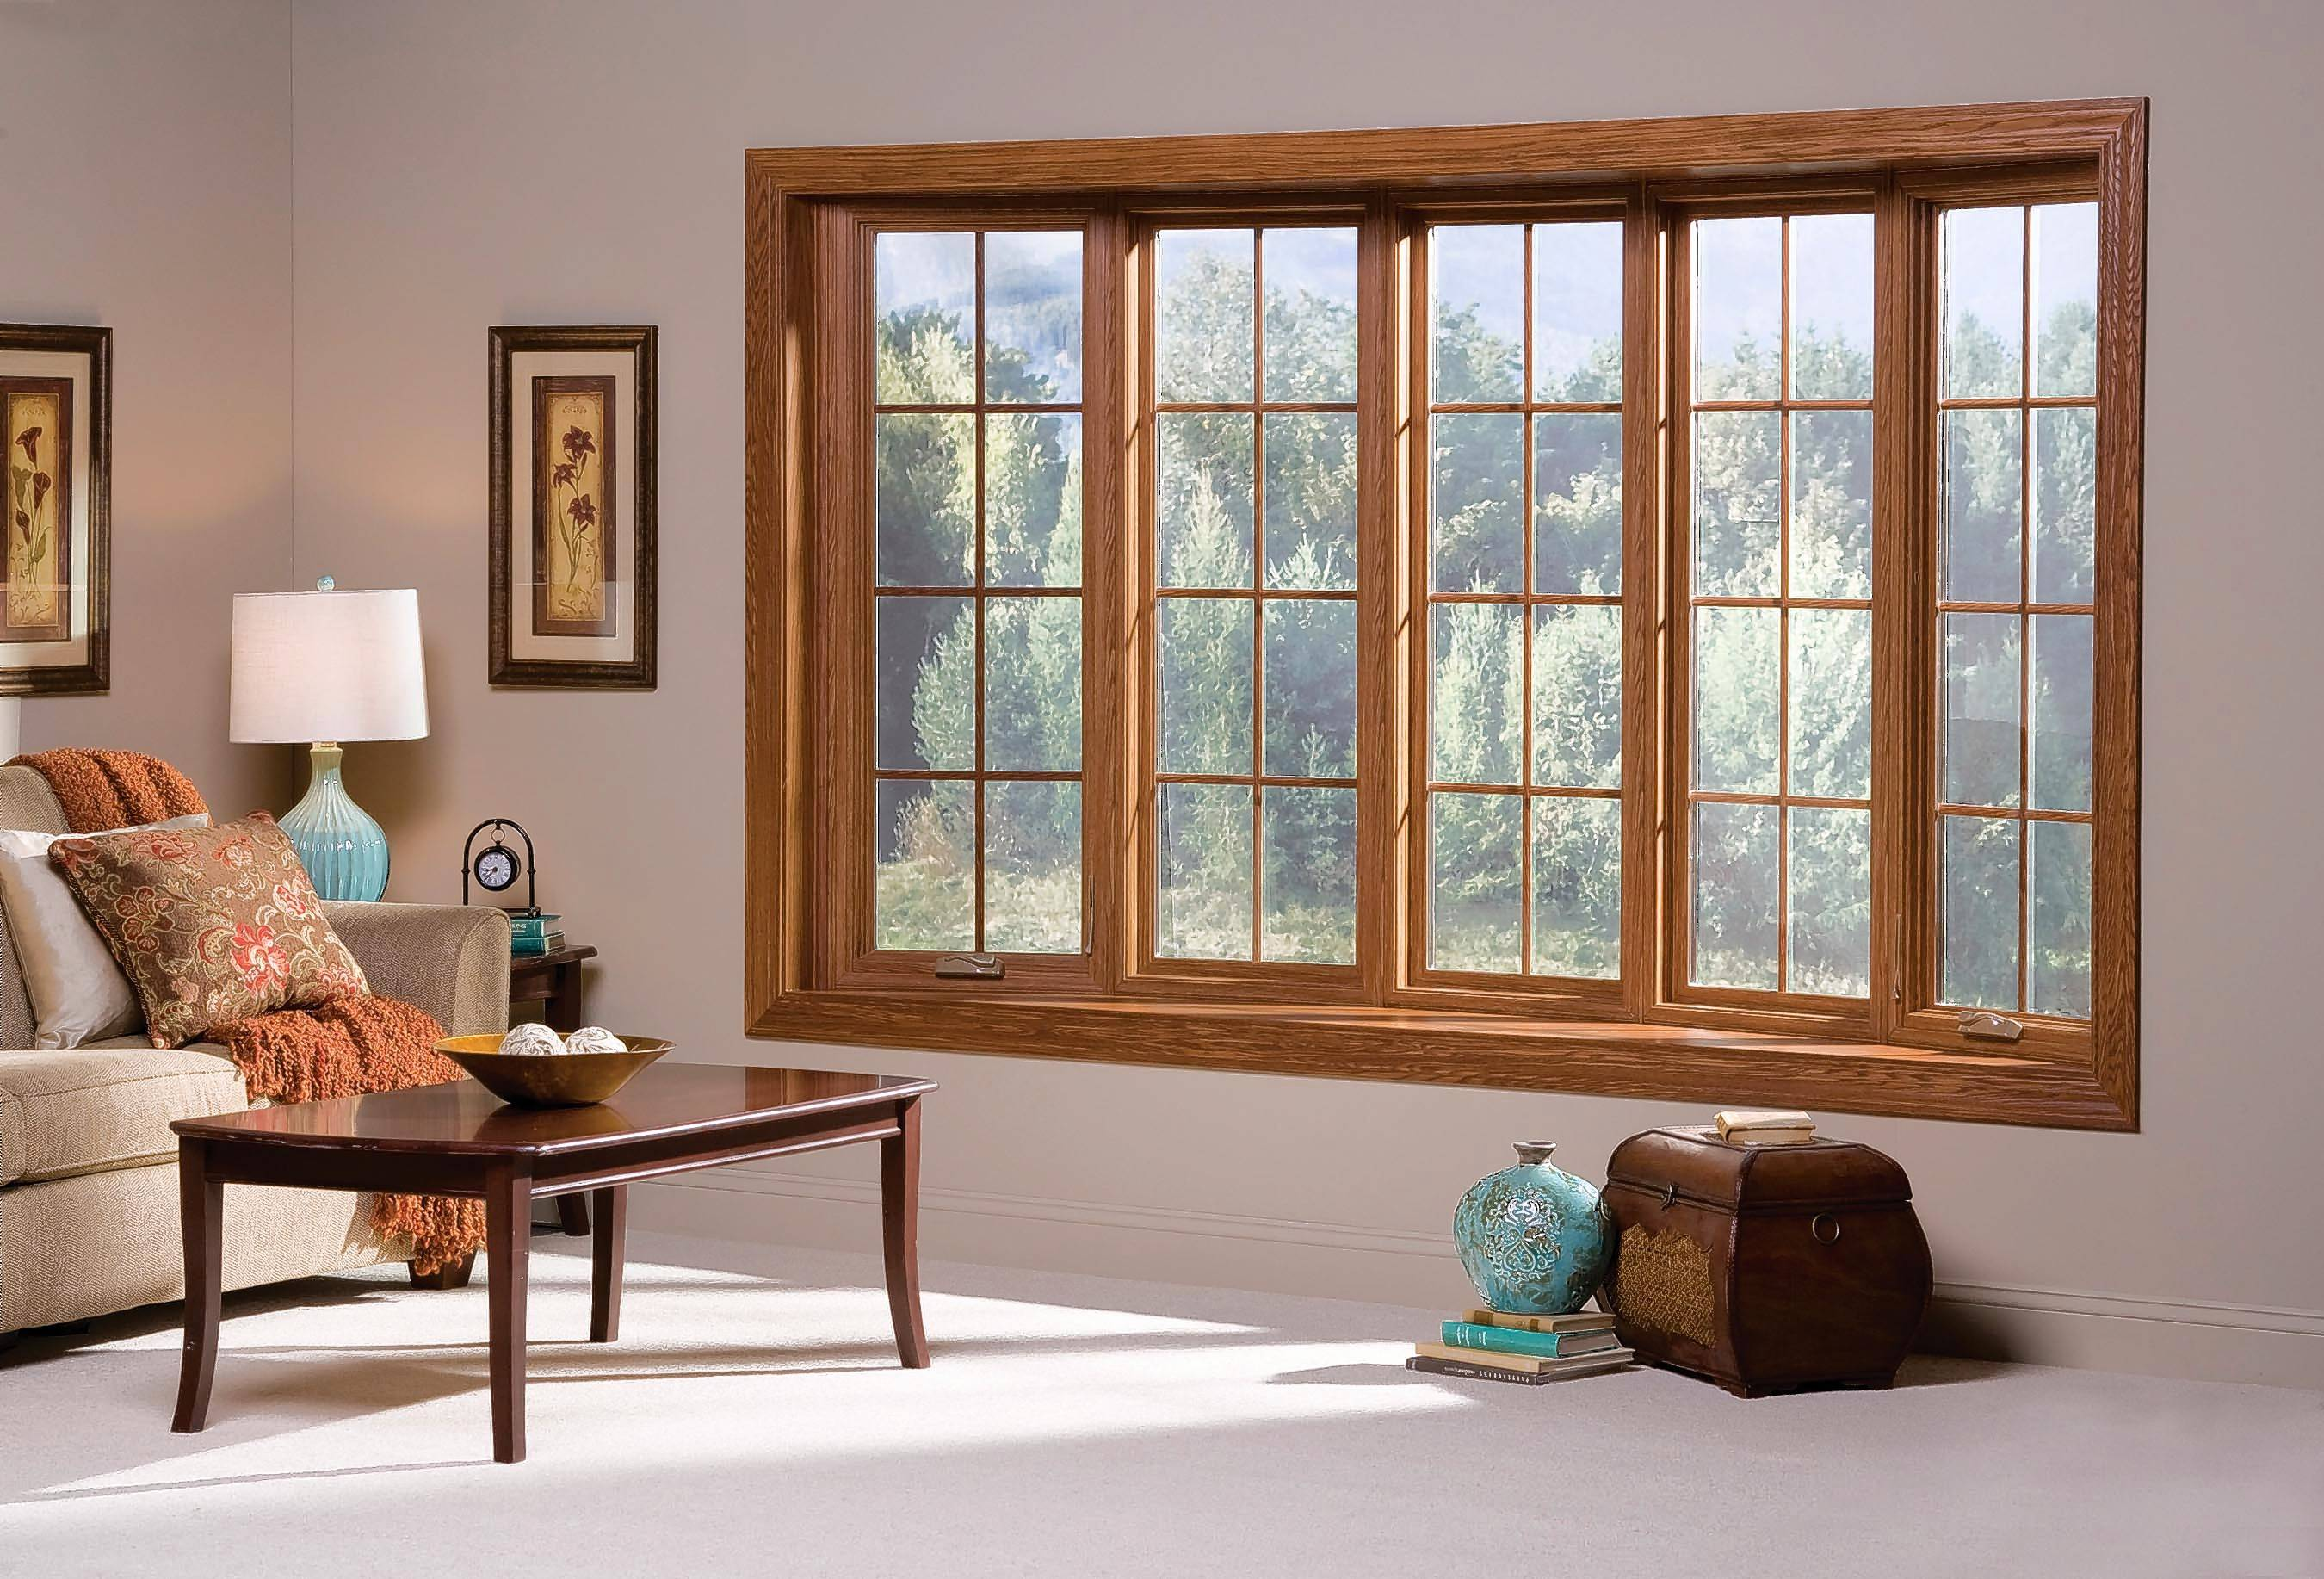 American Thermal Window and Sahara Window and Doors carries nine window lines including Marvin and & Window door replacements pay for themselves